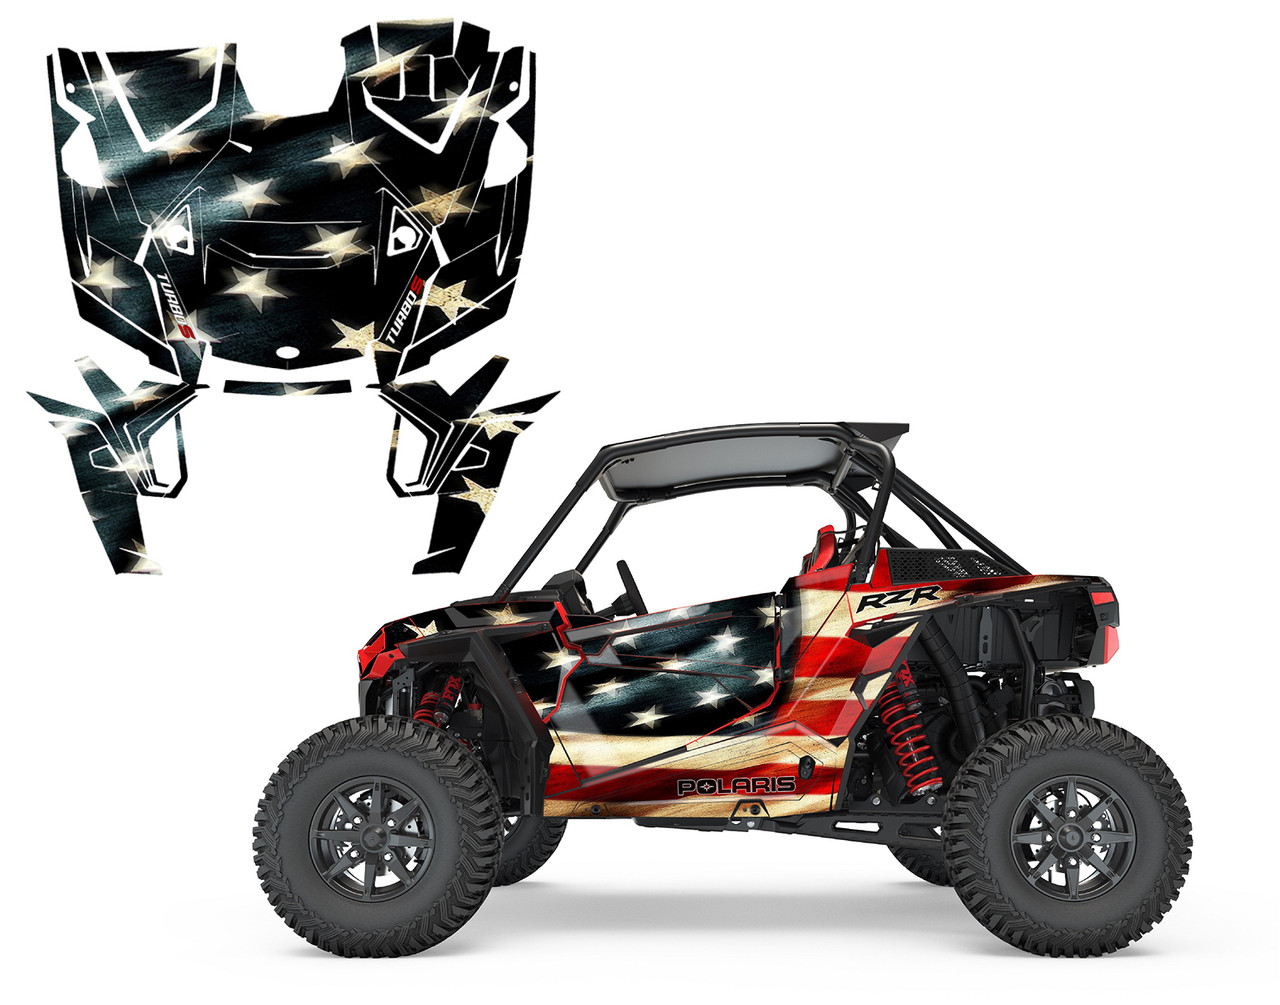 2019 RZR 1000 Turbo S XP graphics with Tattered American Flag design